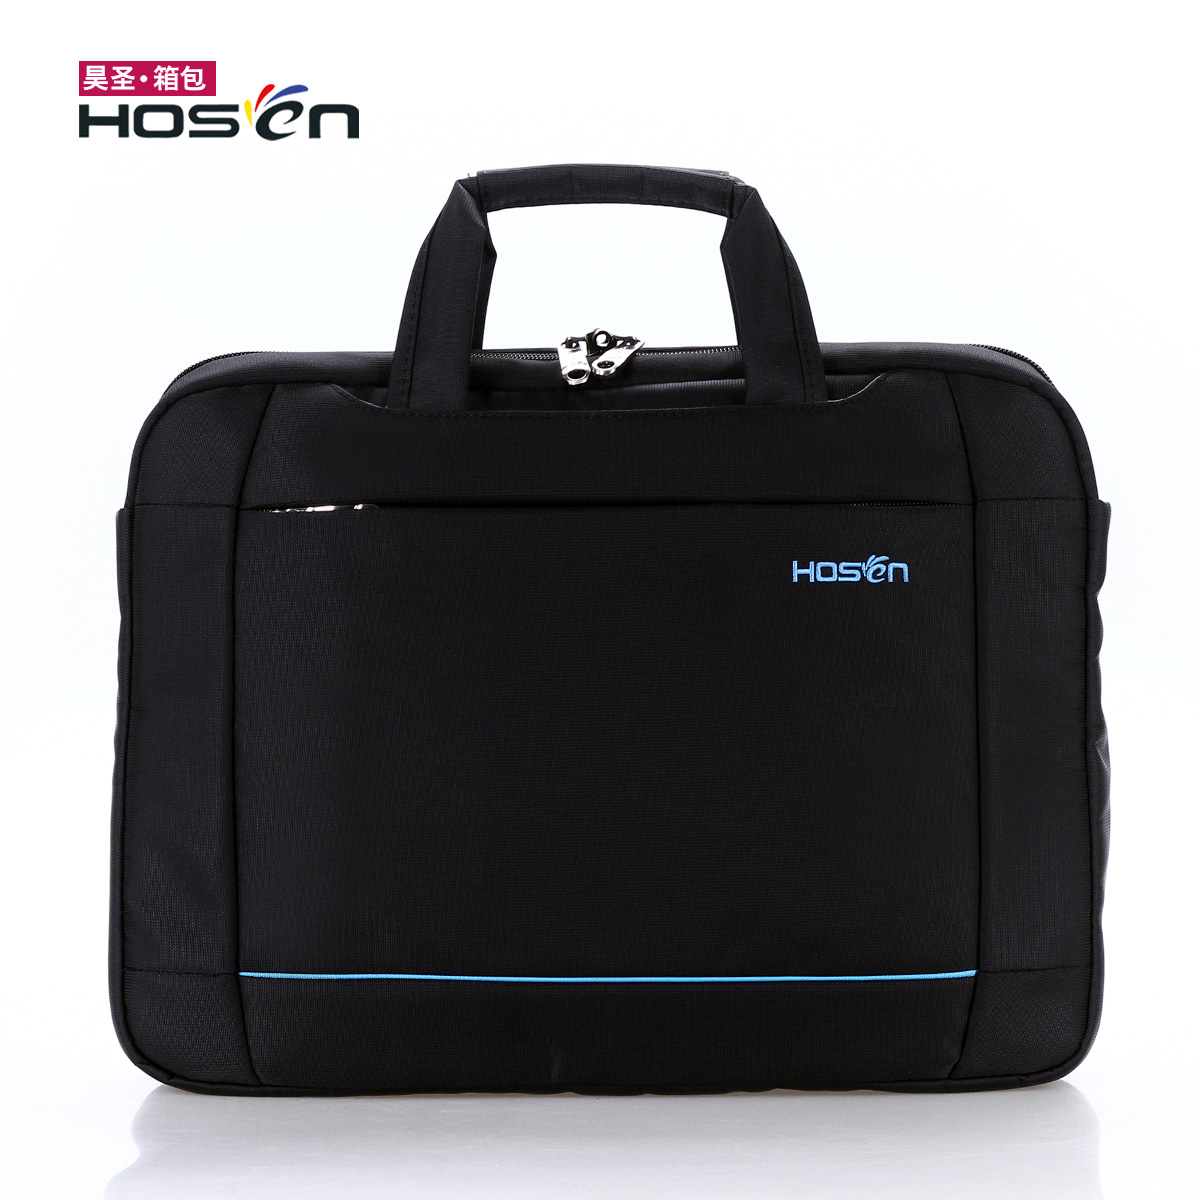 Hosen/hao st. lenovo acer asus dell hp laptop bag 14 inch sony laptop bag laptop shoulder bag women